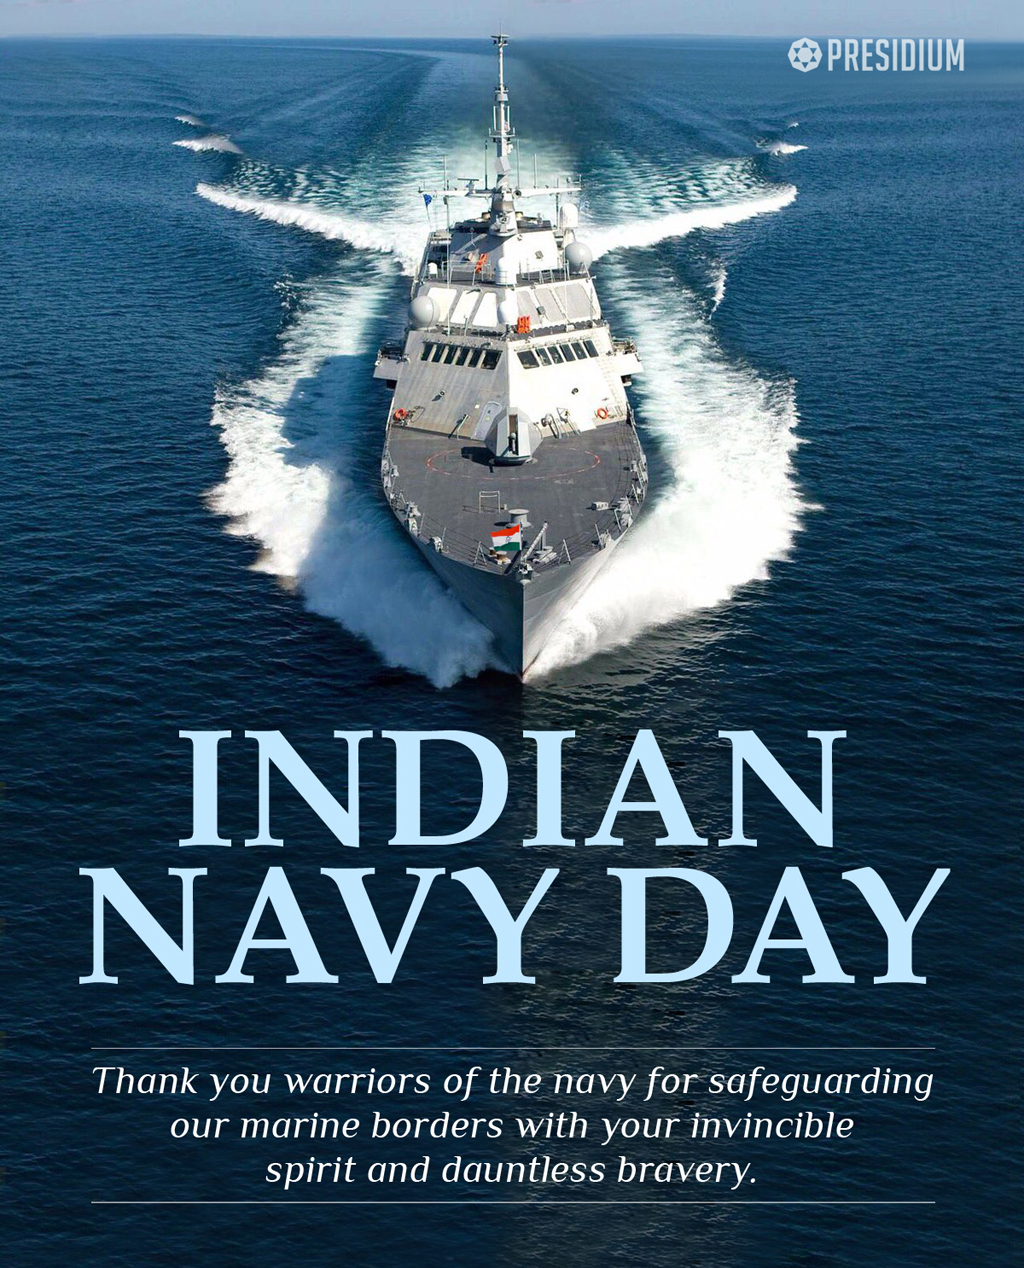 INDIAN NAVY DAY:SALUTING THE INDOMITABLE STRENGTH OF INDIAN NAVY!